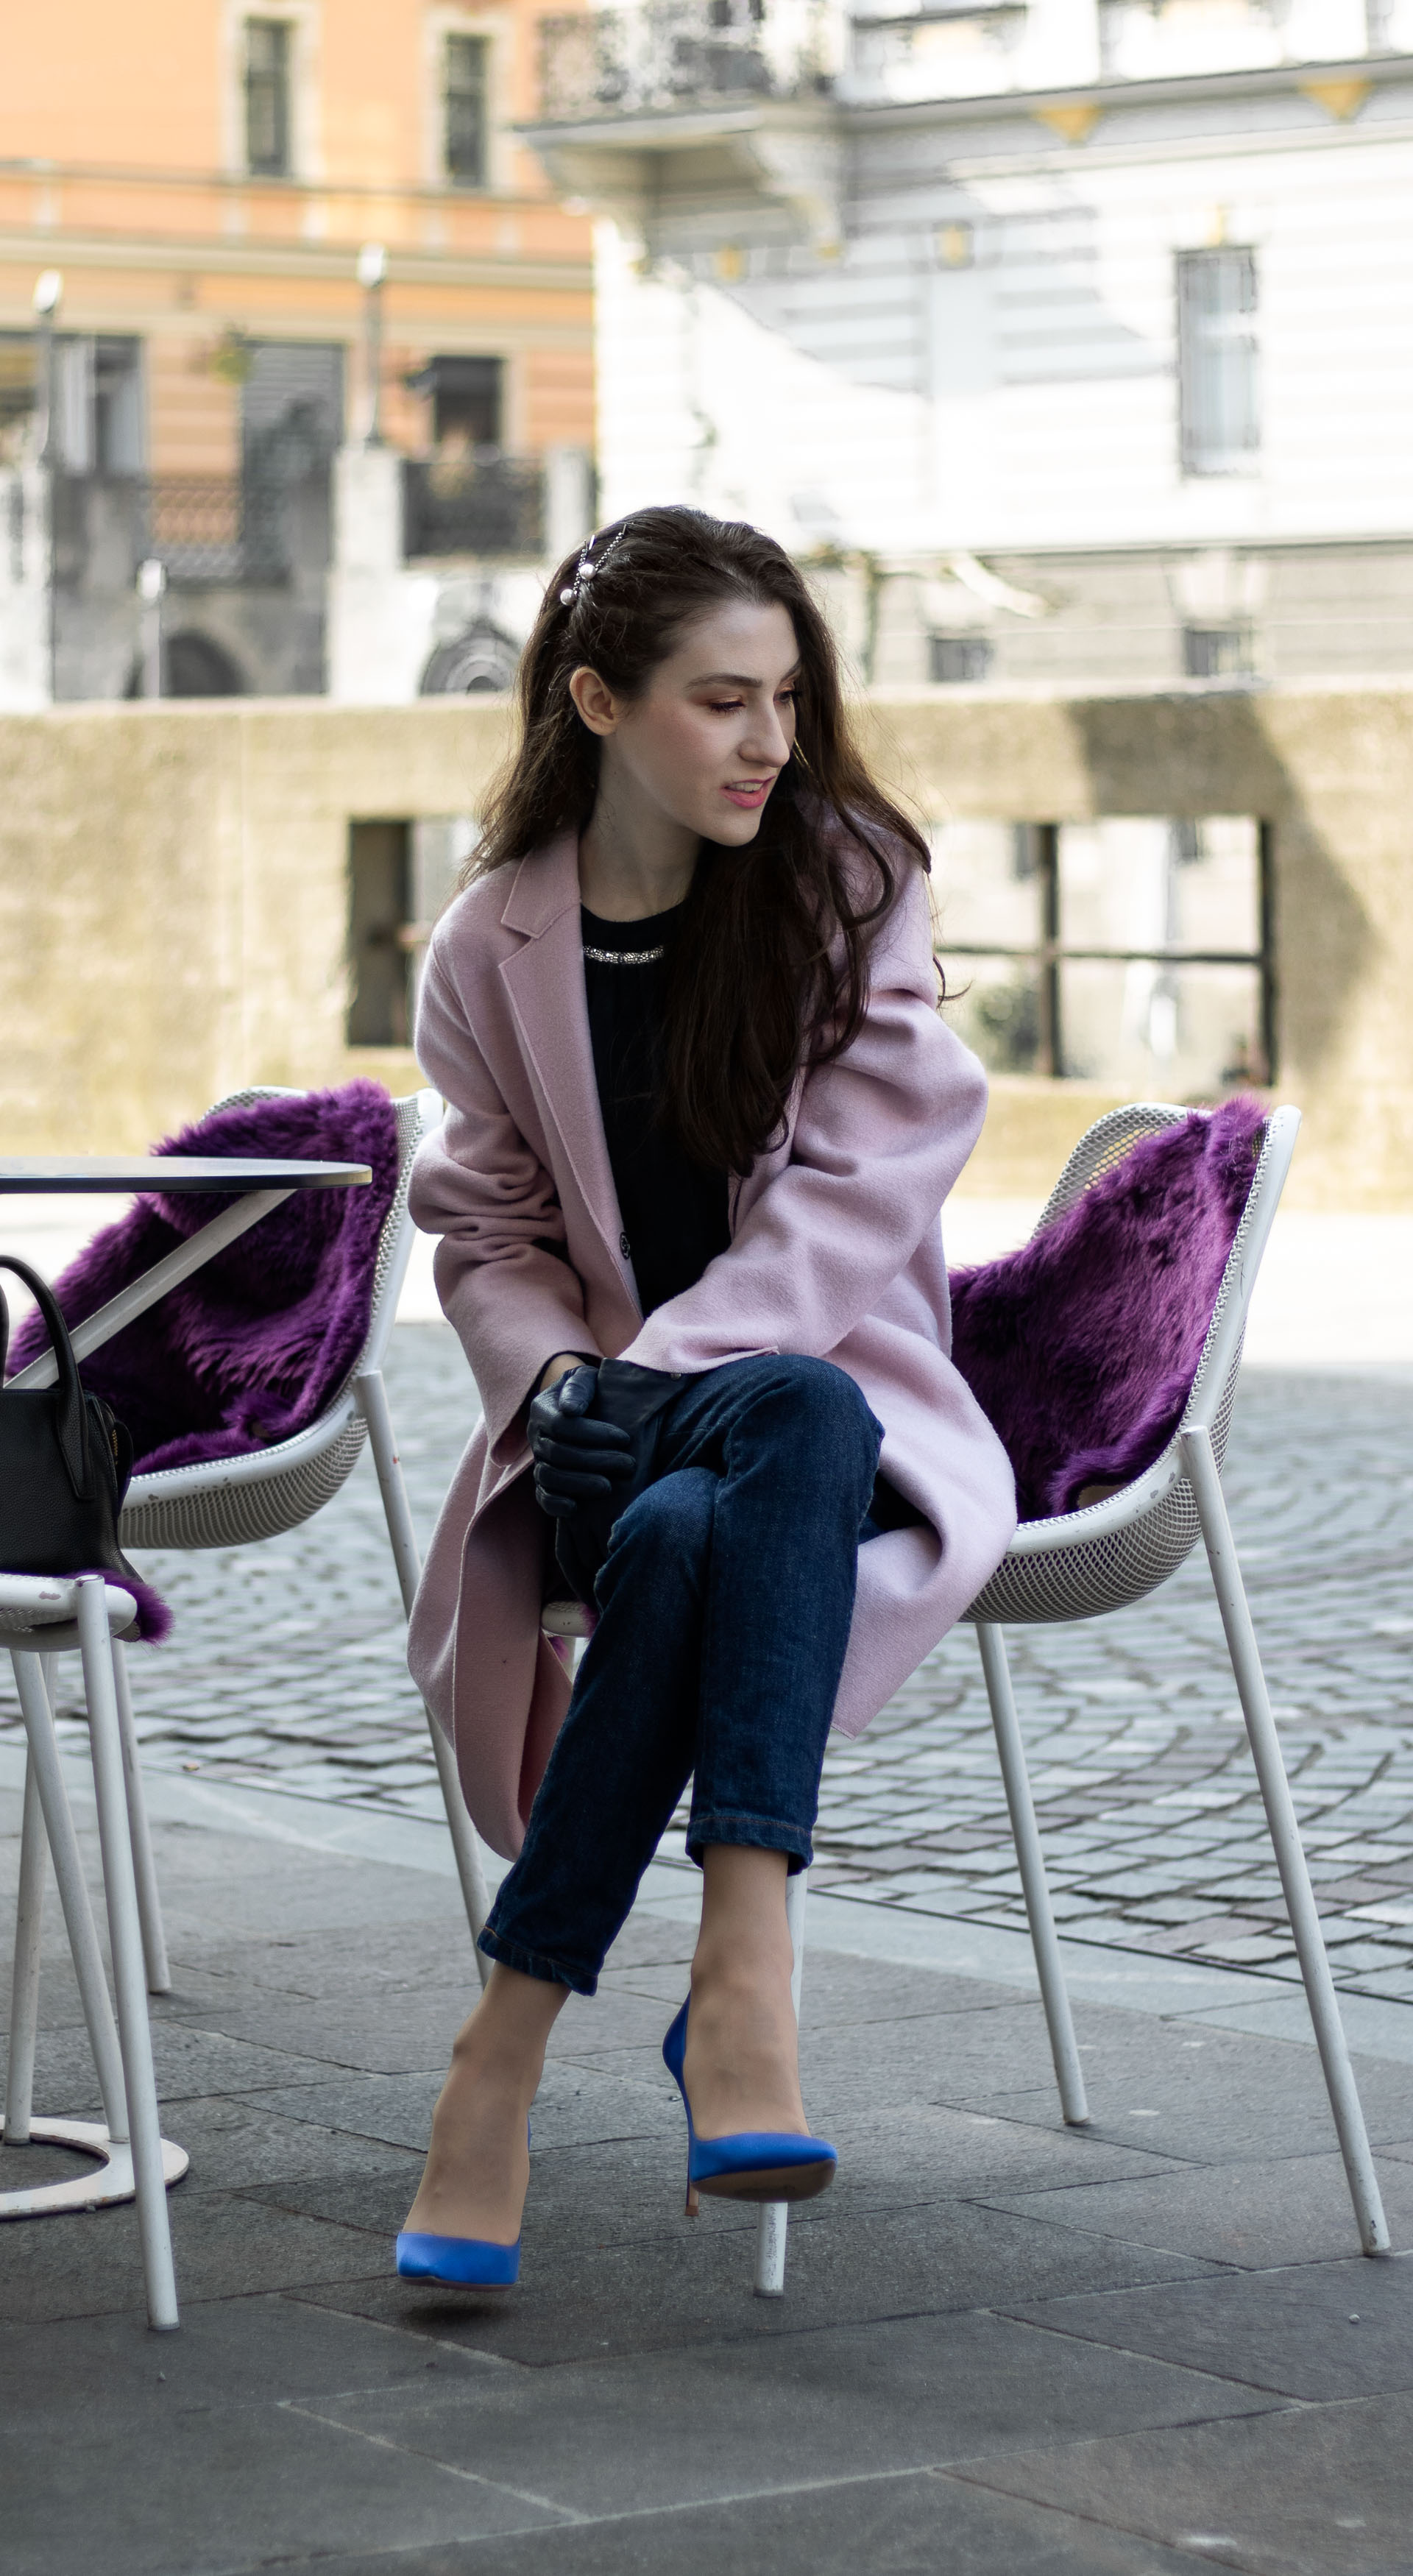 Must follow Fashion Blogger Veronika Lipar of Brunette from Wall Street wearing loose pink Harris Wharf London coat A.P.C. Paris dark blue denim jeans Gianvito Rossi blue pumps black top handle bag Forzieri blue leather gloves pearl hairpin sitting at the table on the street